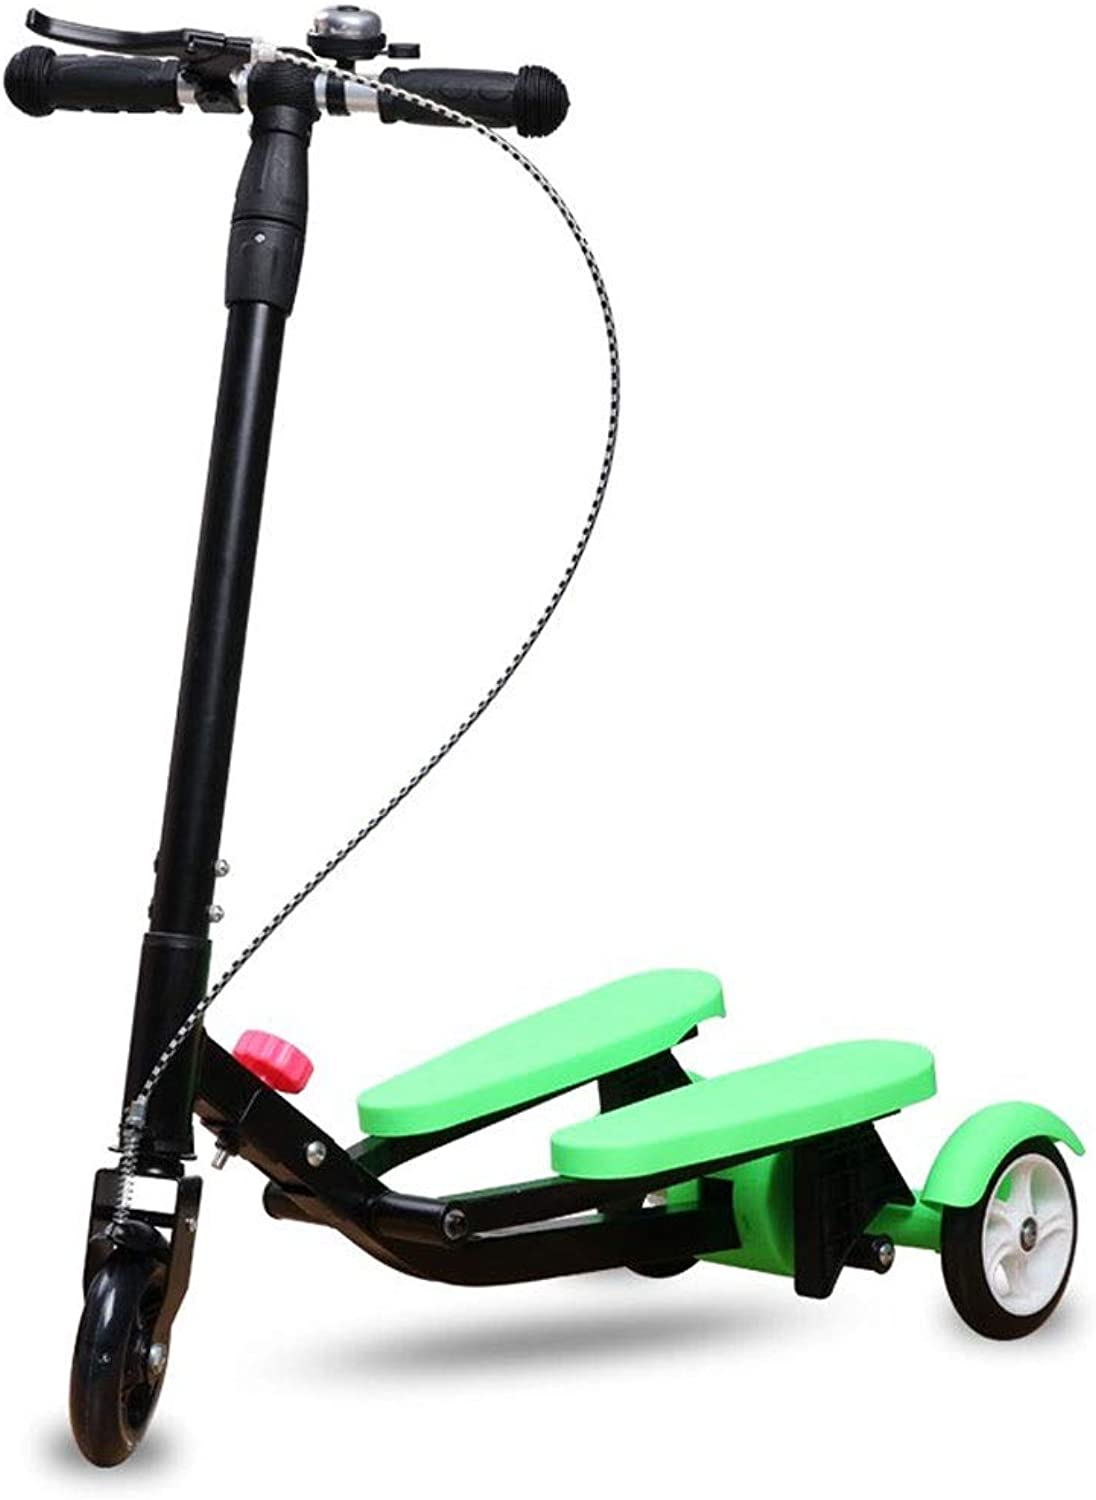 ZAIHW 3 Wheeled Scooter Push Swing Wiggle Scooters Speeder Wheel Kick Scooter for Boys Girl Adult Ages 3-15